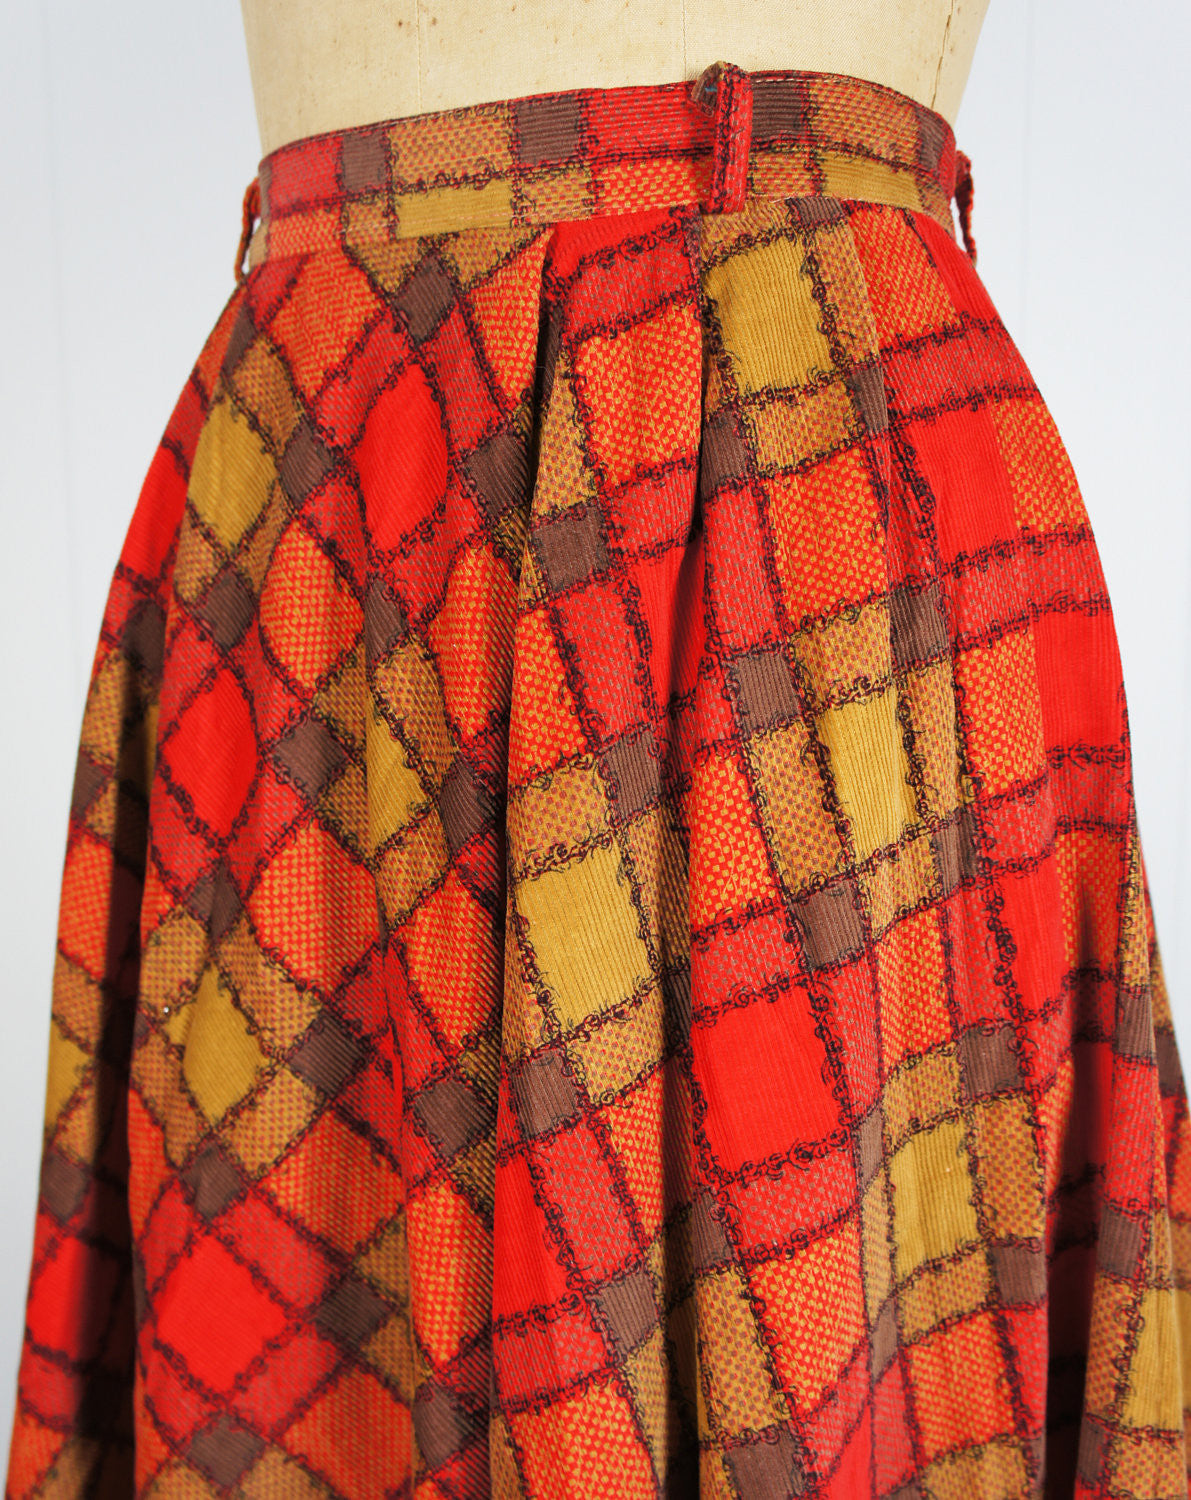 1950's Brown, Red & Tan Corduroy Full Skirt - Size XS